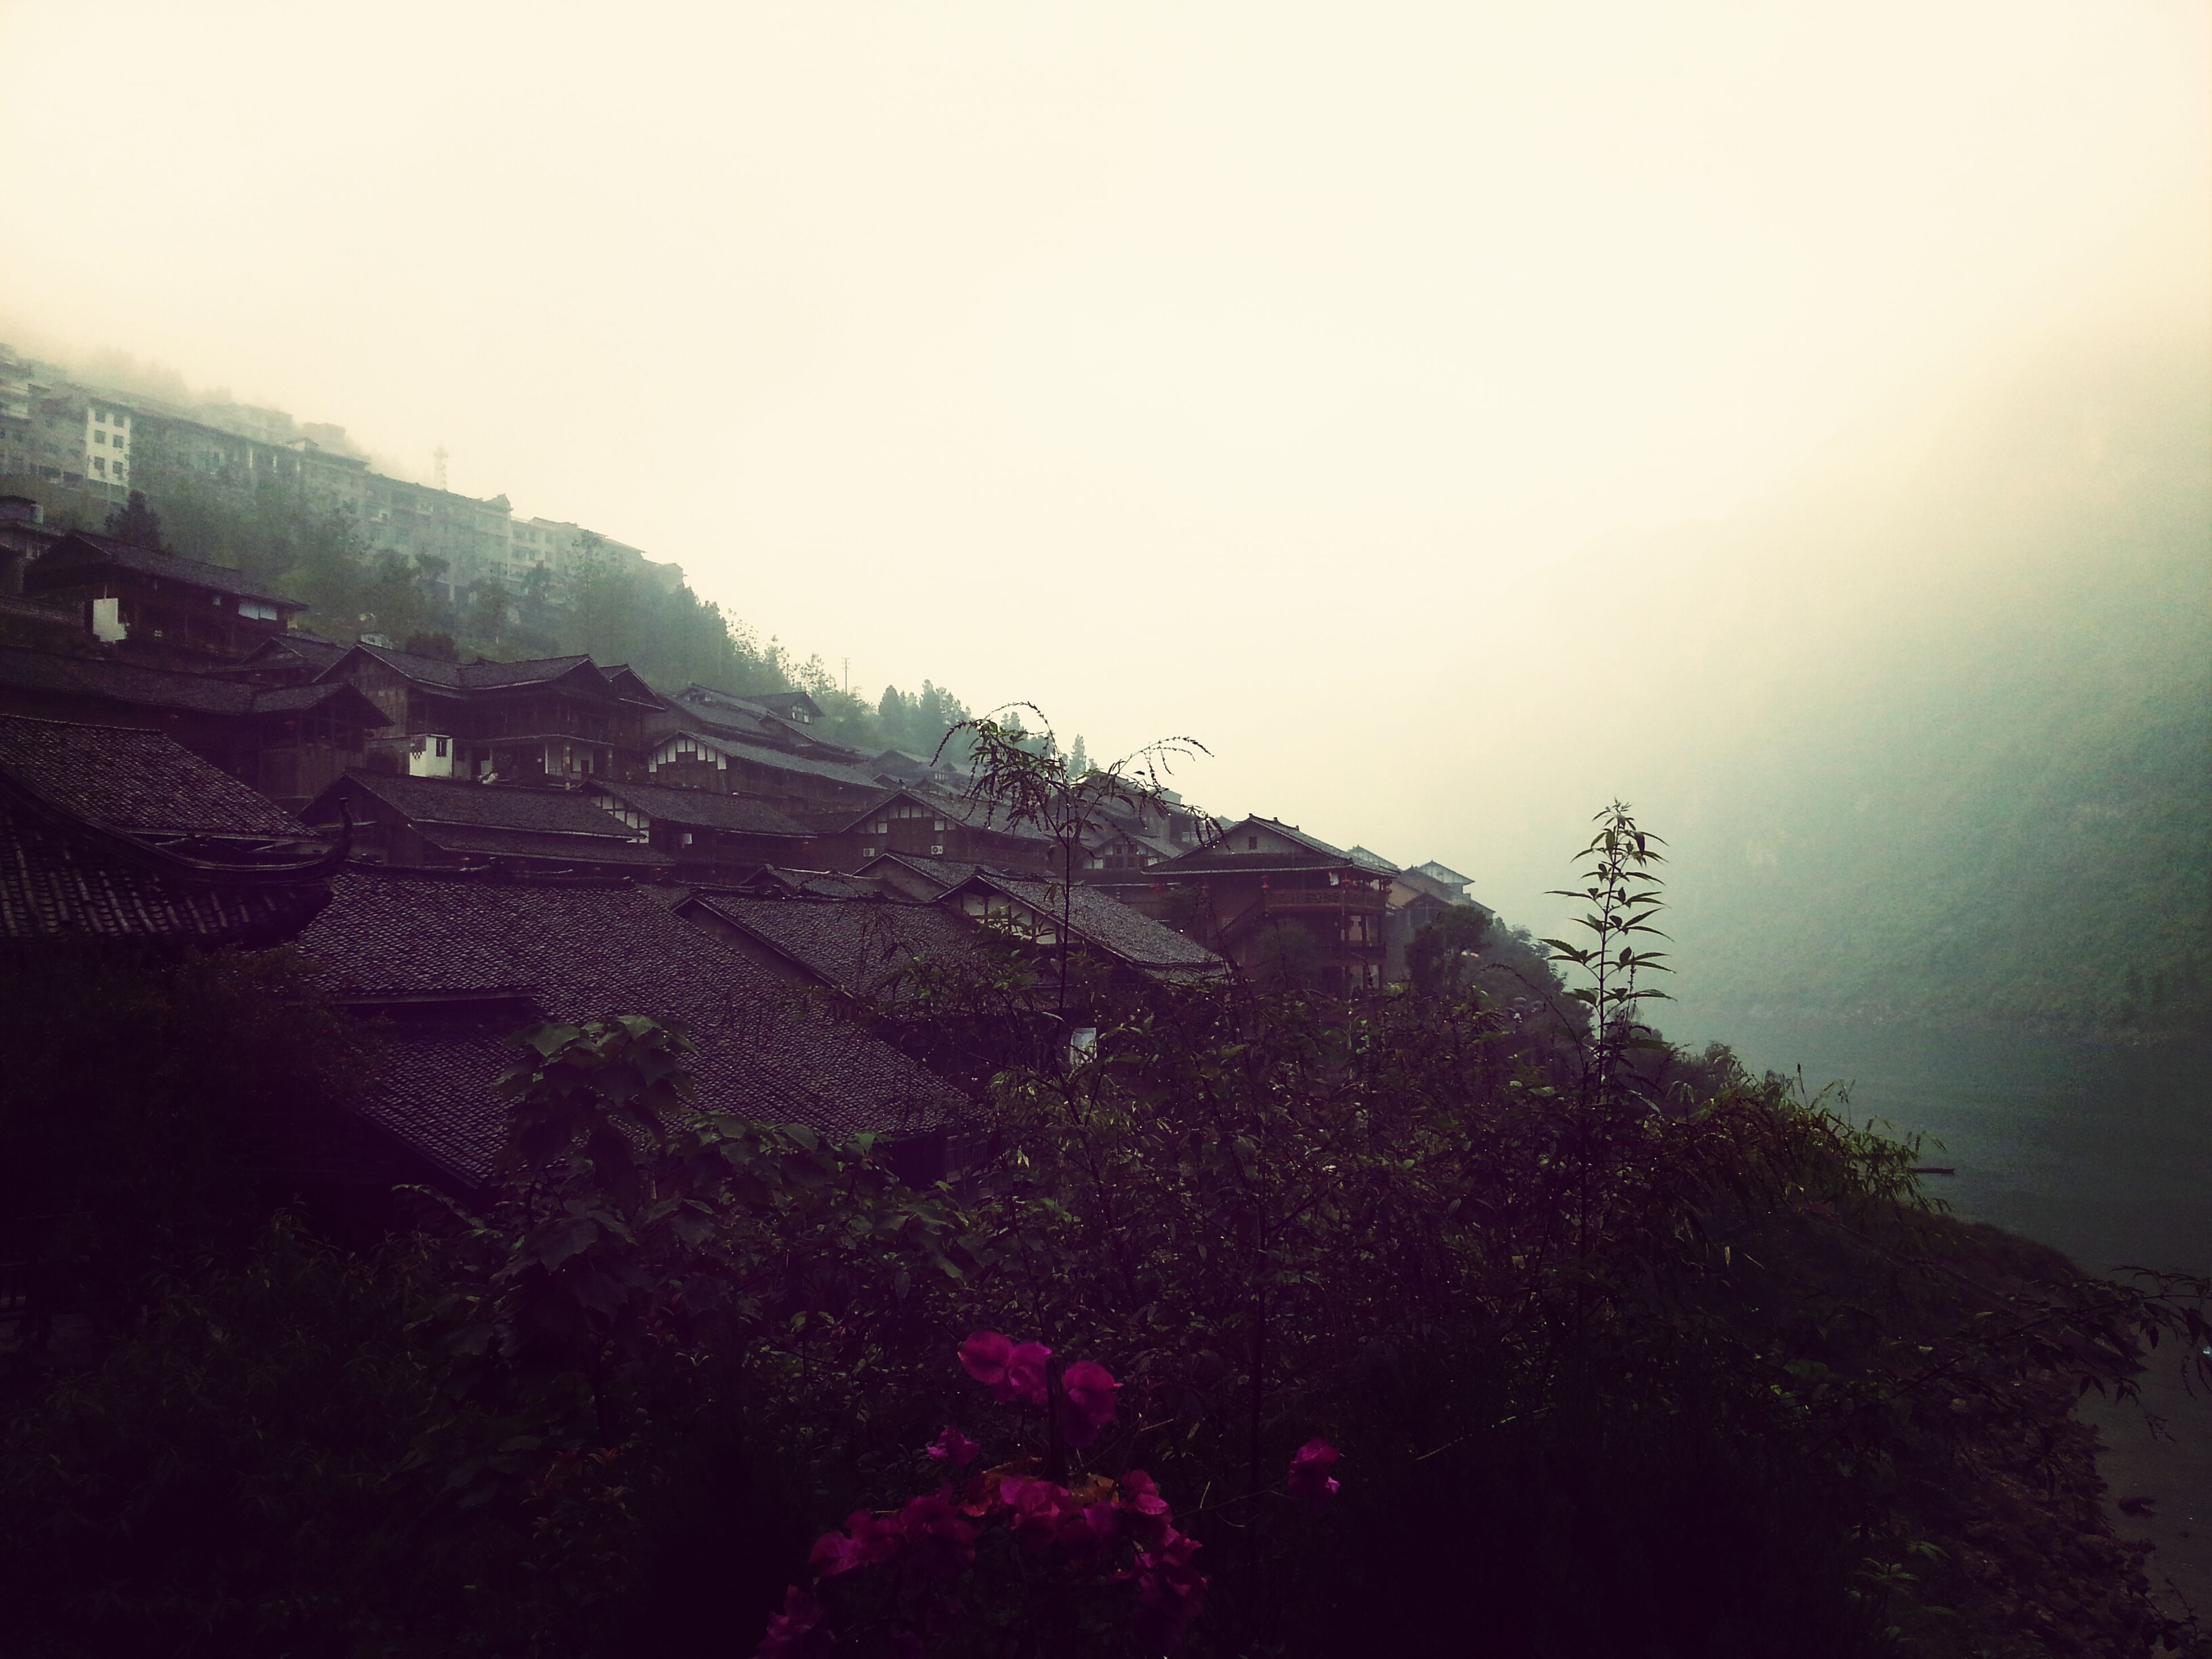 Gongtan Ancient Town